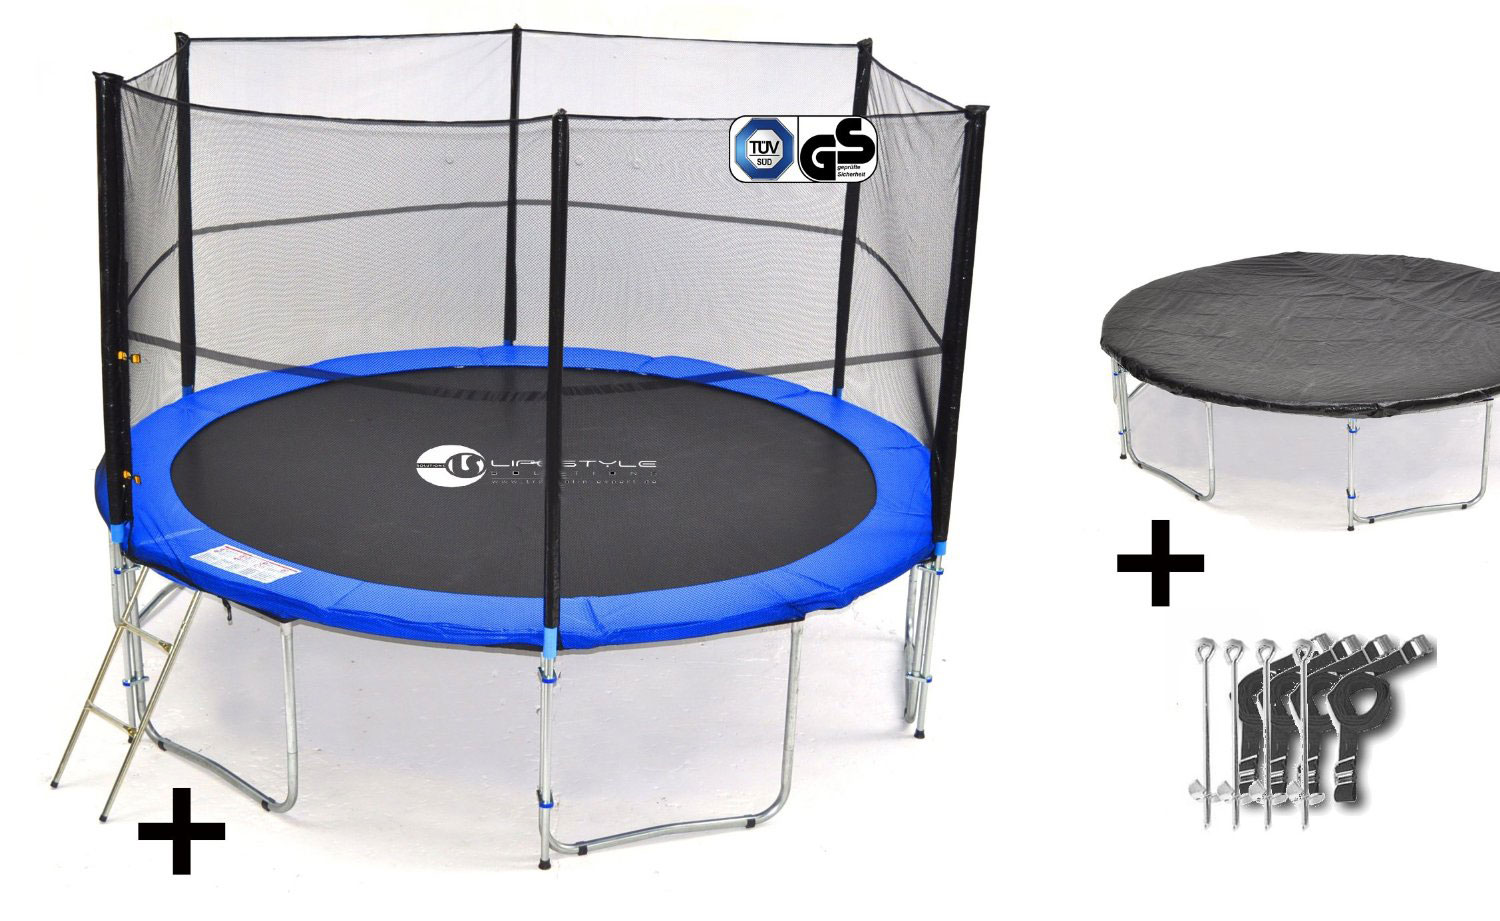 comparatif meilleures ventes trampoline pas cher trampoline enfant. Black Bedroom Furniture Sets. Home Design Ideas